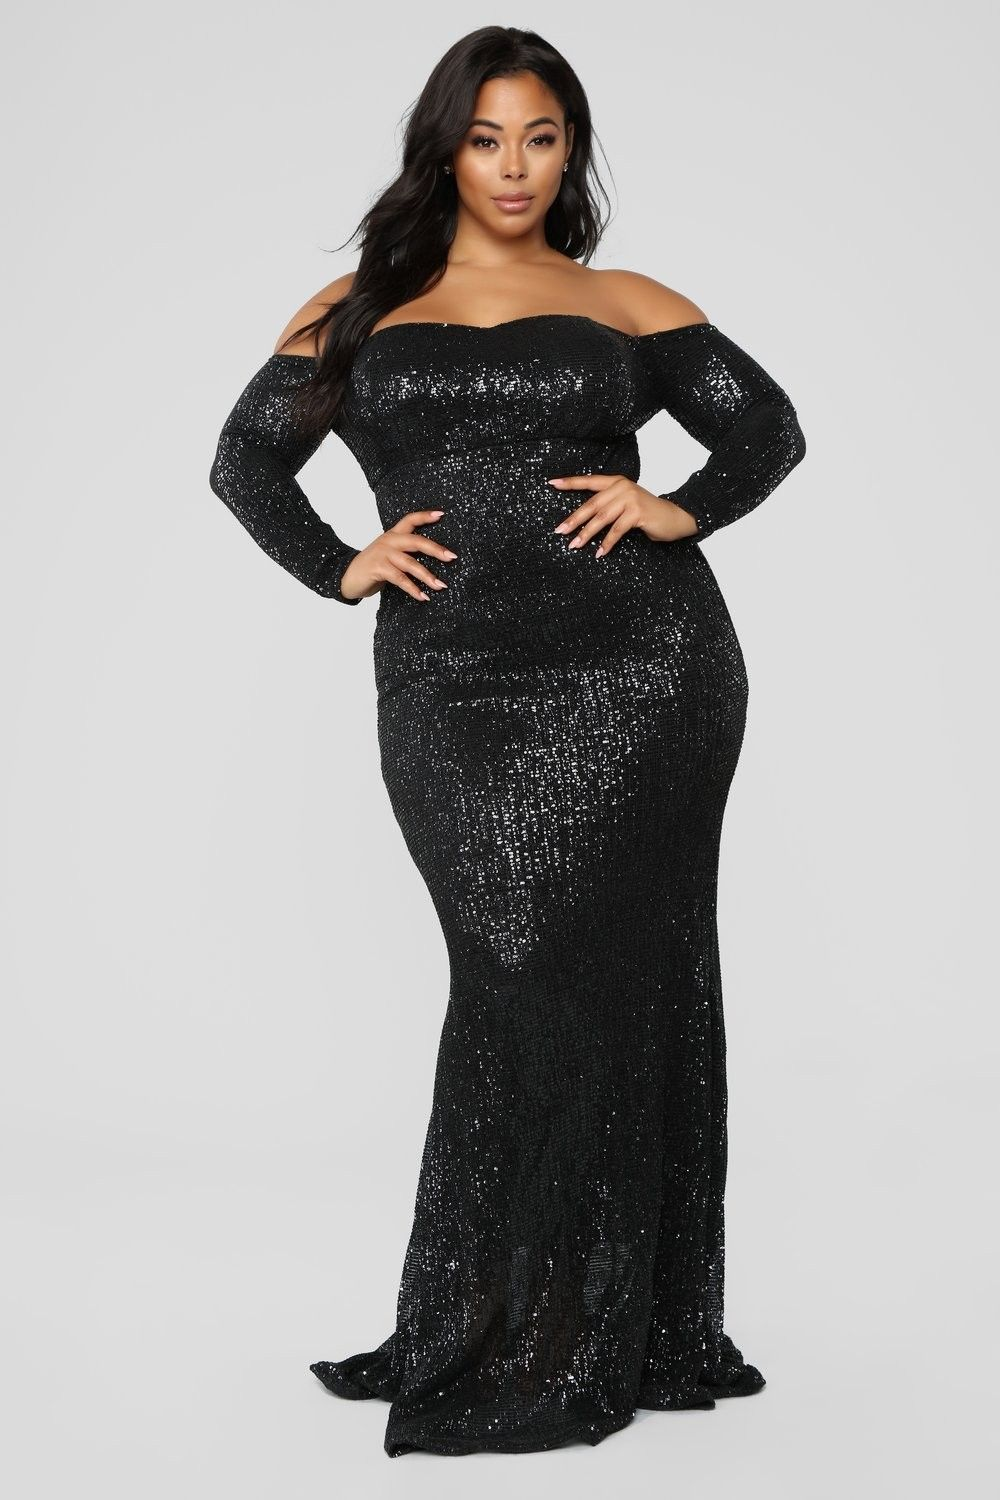 18d9000b6a1 Plus Size Got Class Sequin Dress - Black  79.99  fashion  ootd  outfit